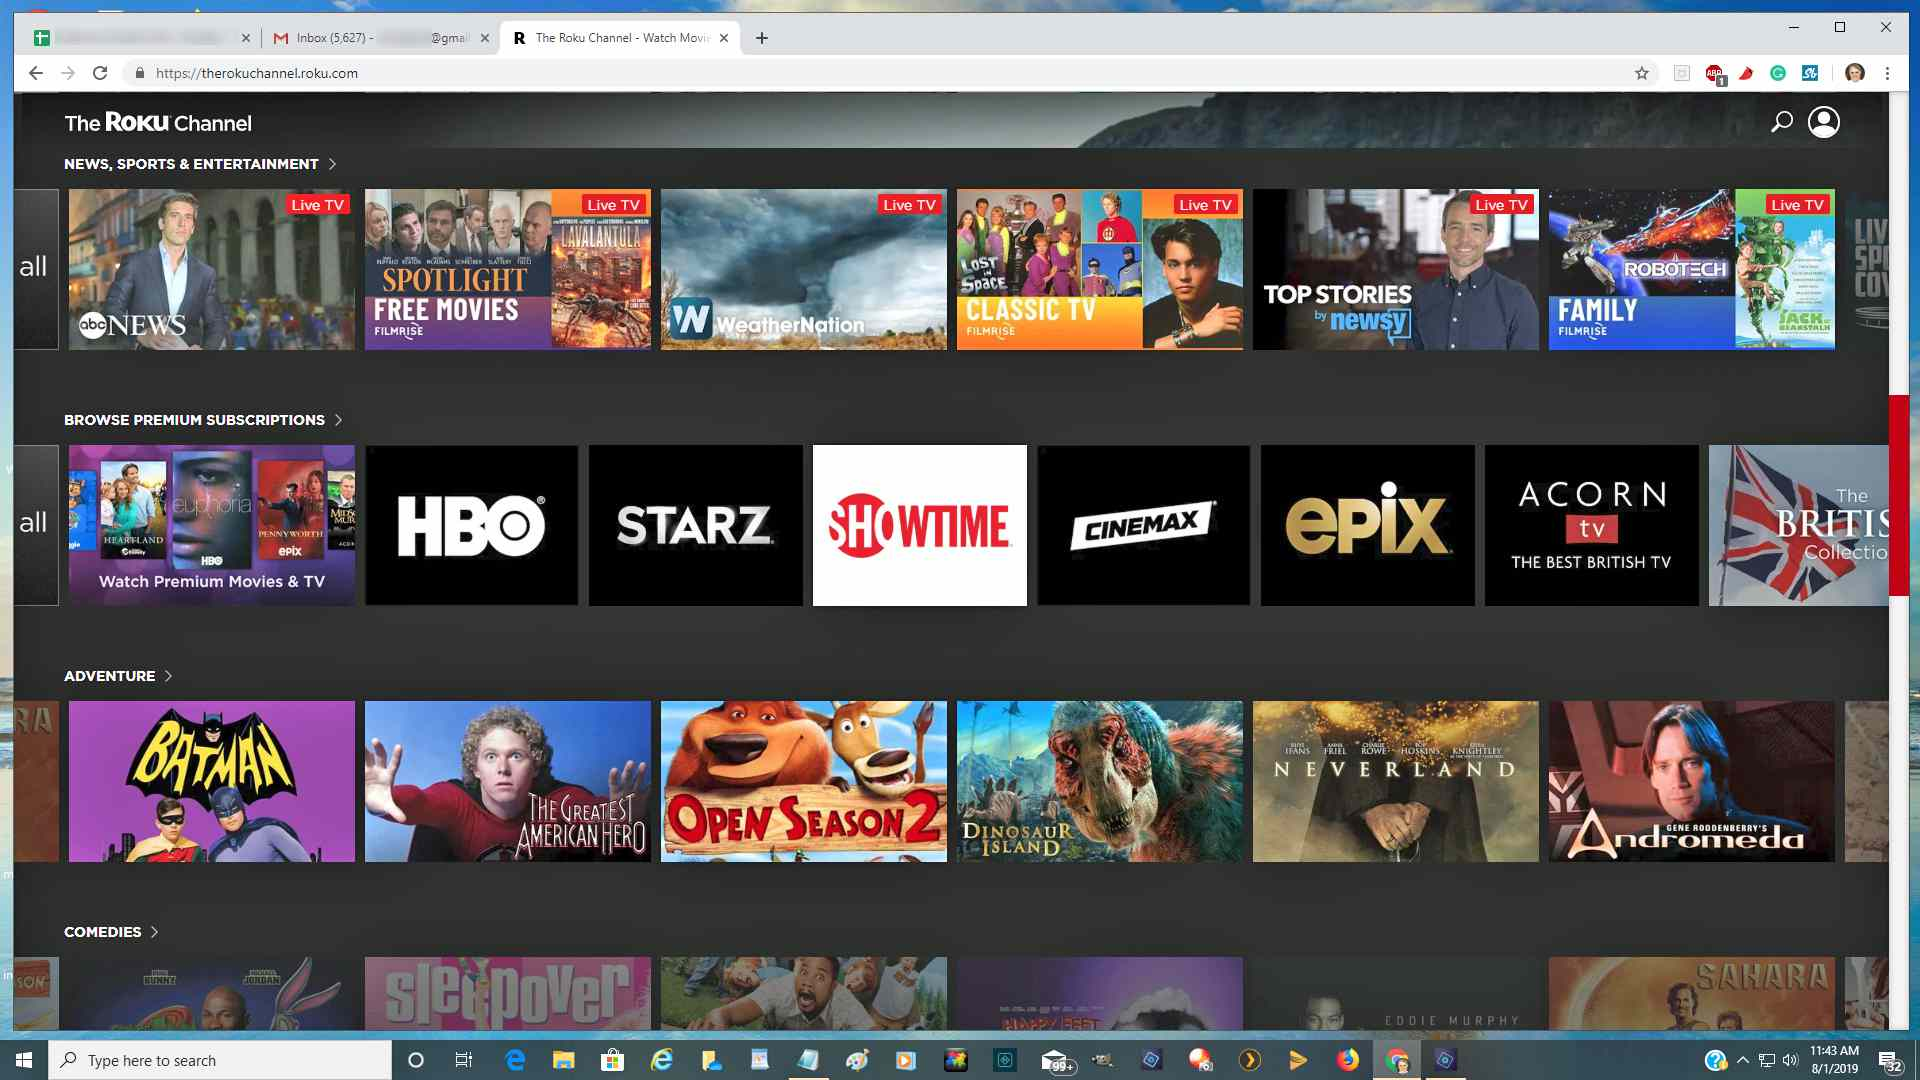 Accessing The Roku Channel Using a Web Browser – Chrome Example